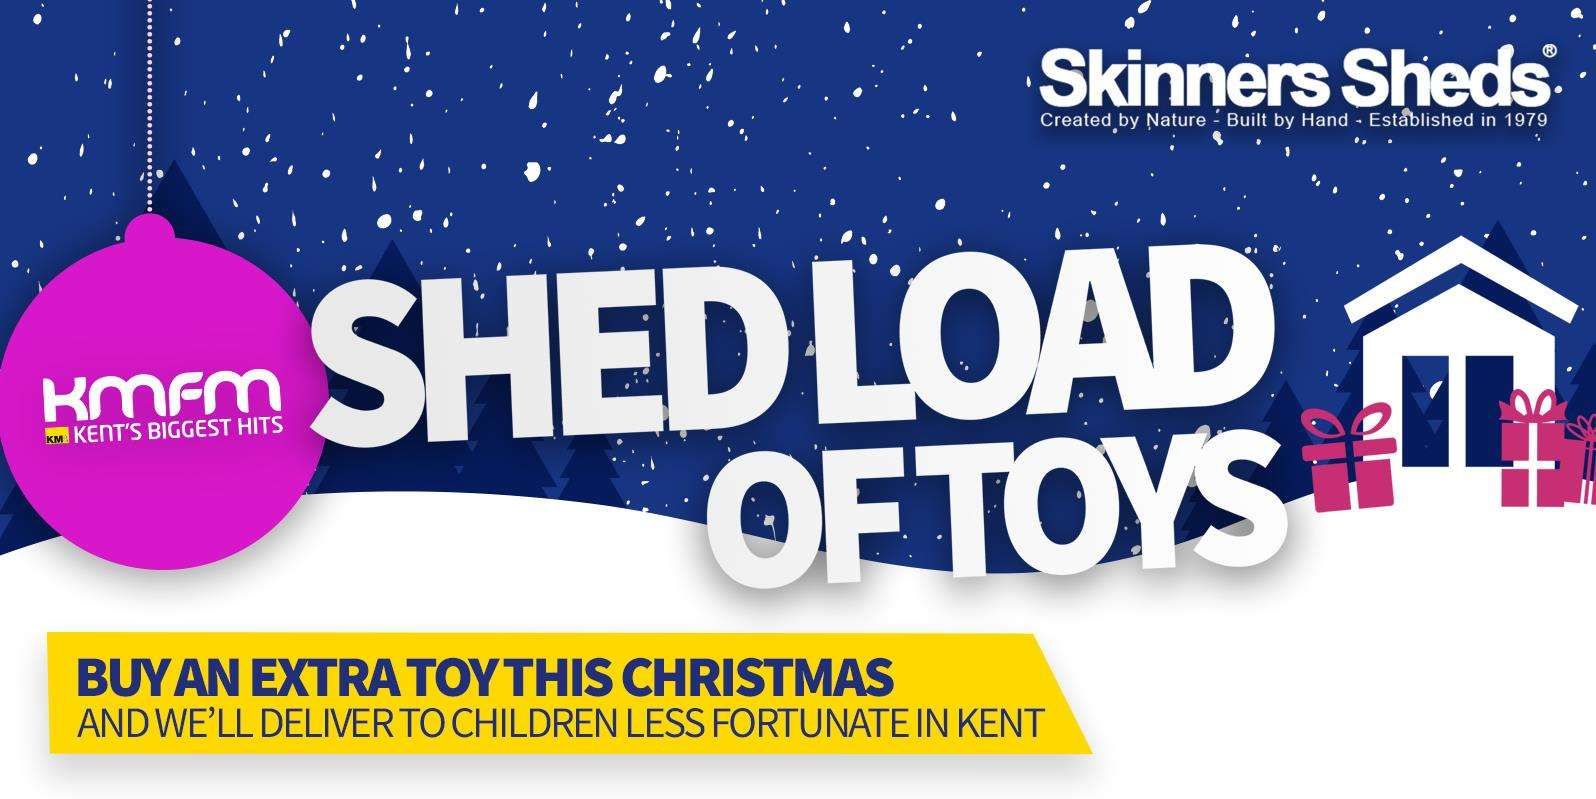 kmfm Shed Load of Toys appeal with Skinners Sheds